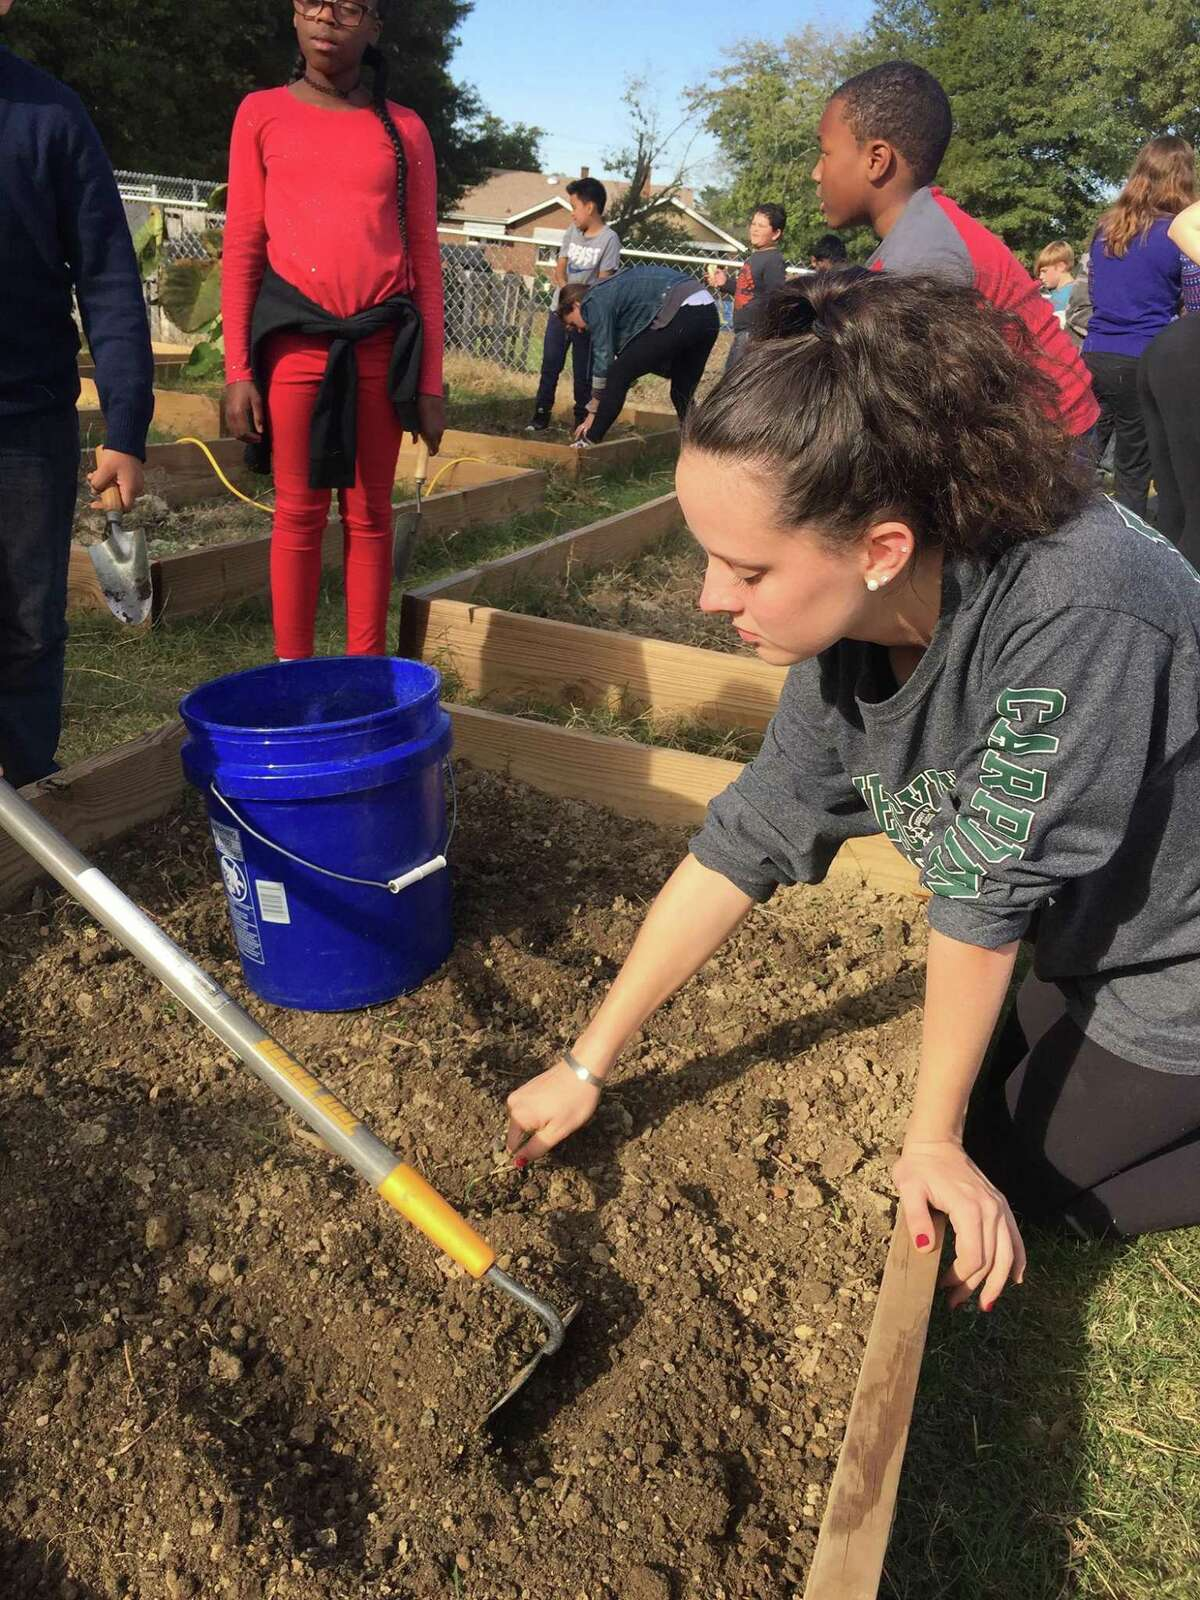 Allie Hawley, a Westover School alumna now at Elon University, received a Leadership Prize from Elon to research the value of using gardens to teach students.